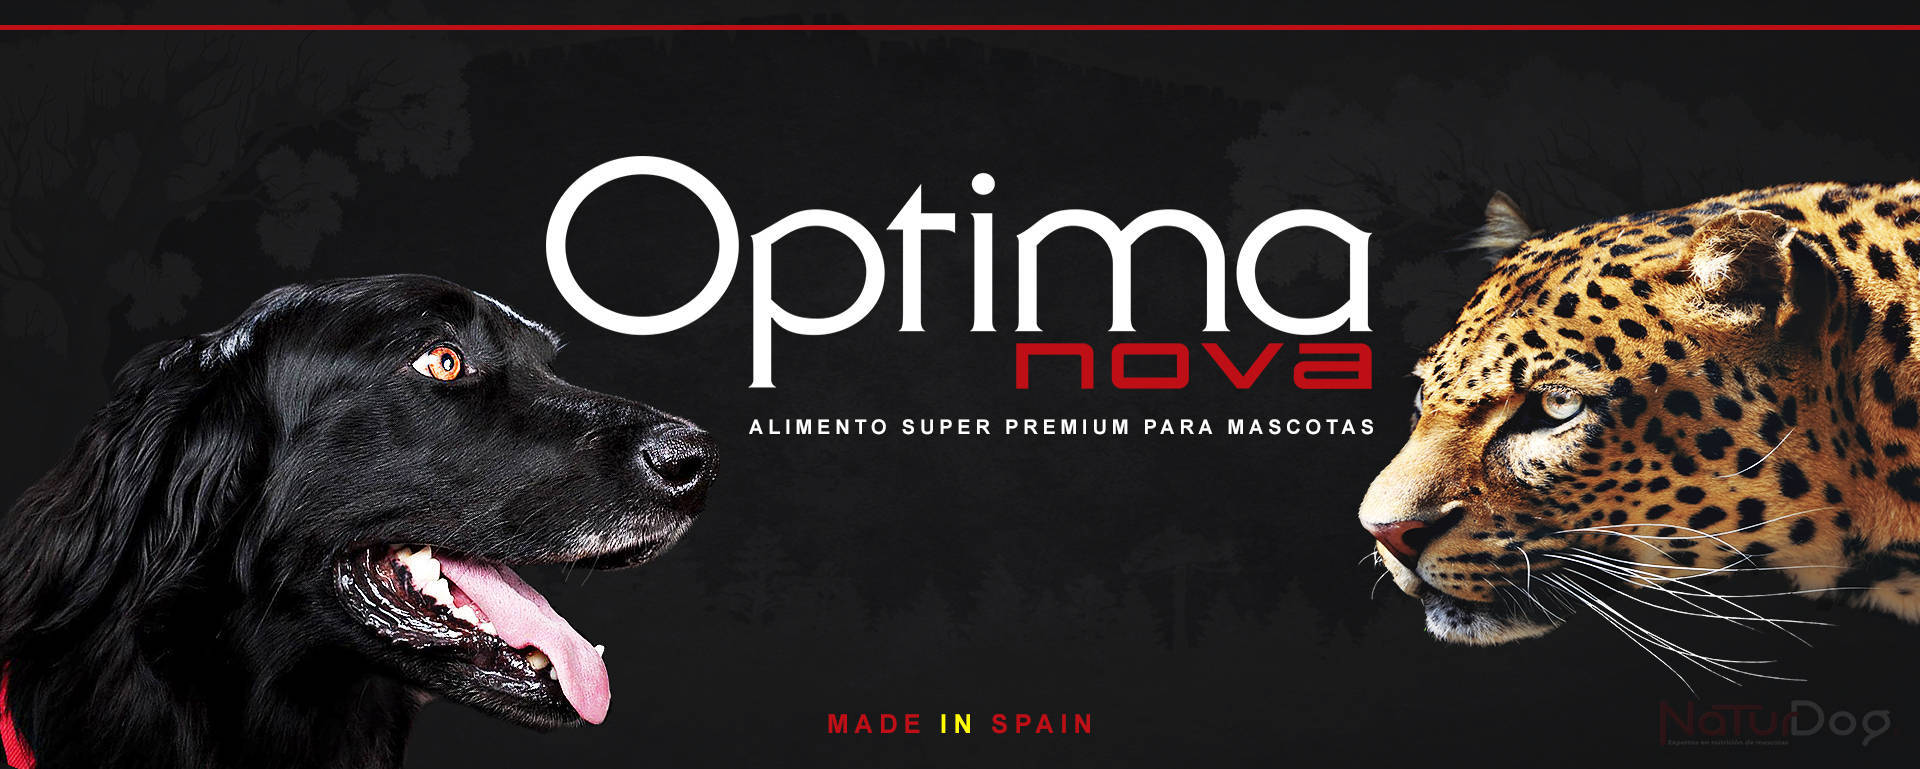 Optima nova Cocker Leopardo NaturDog web by TecniPublic.es